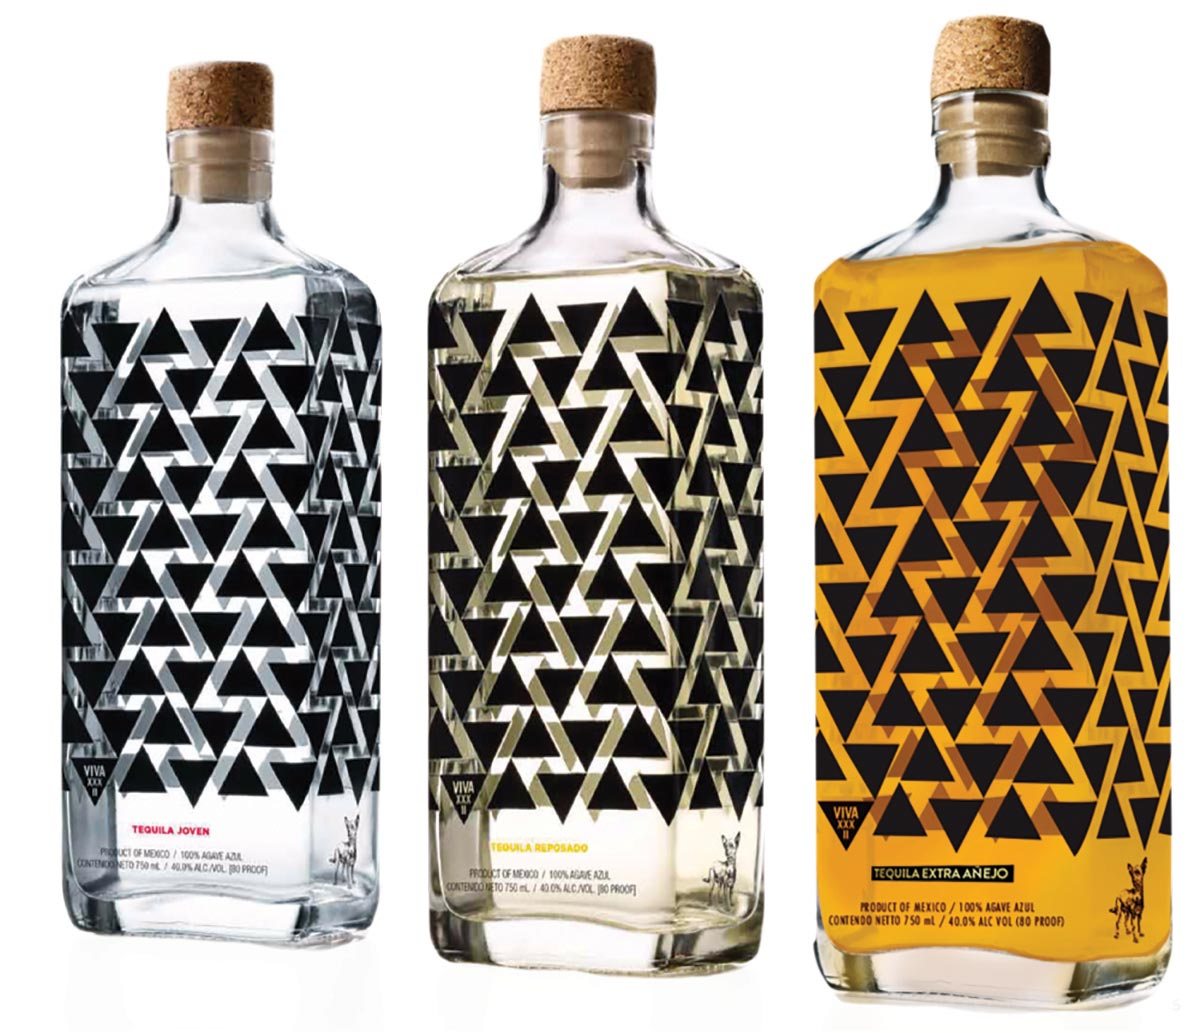 New Tequila Line Guided by Philanthropic Mission